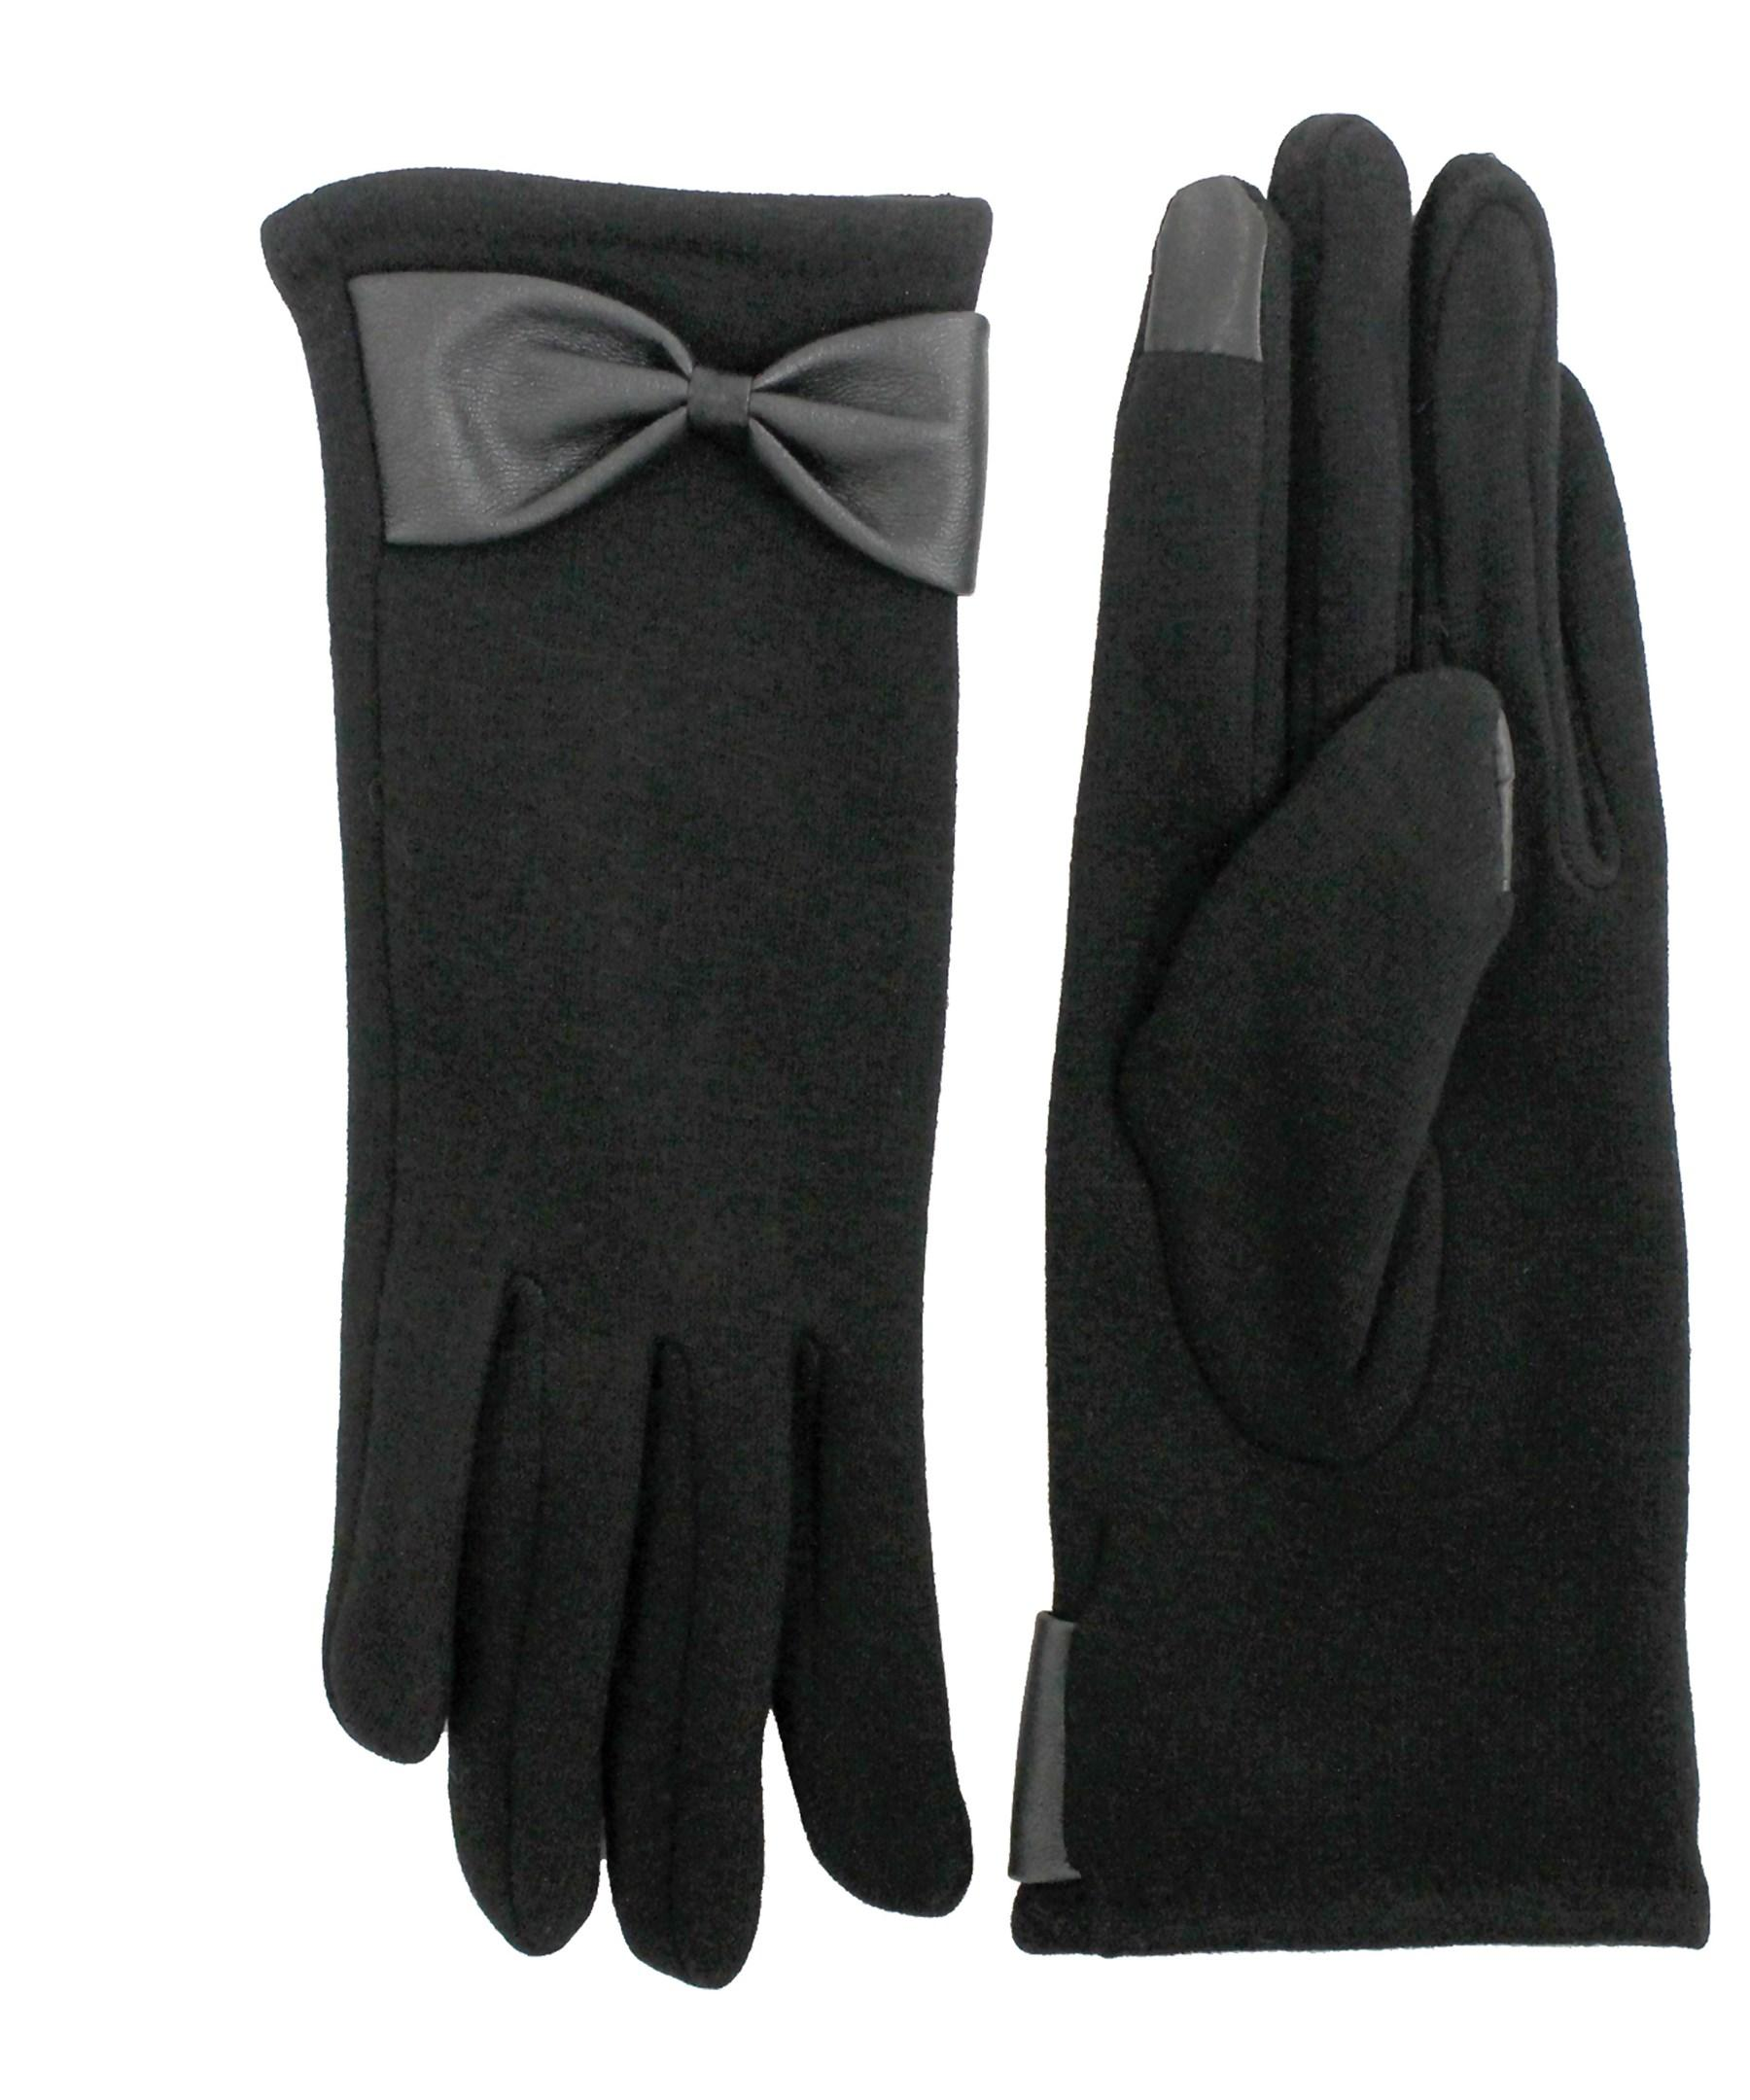 Black gloves with bow - Fits Black Tricot Gloves With Bow Lyst View Fullscreen